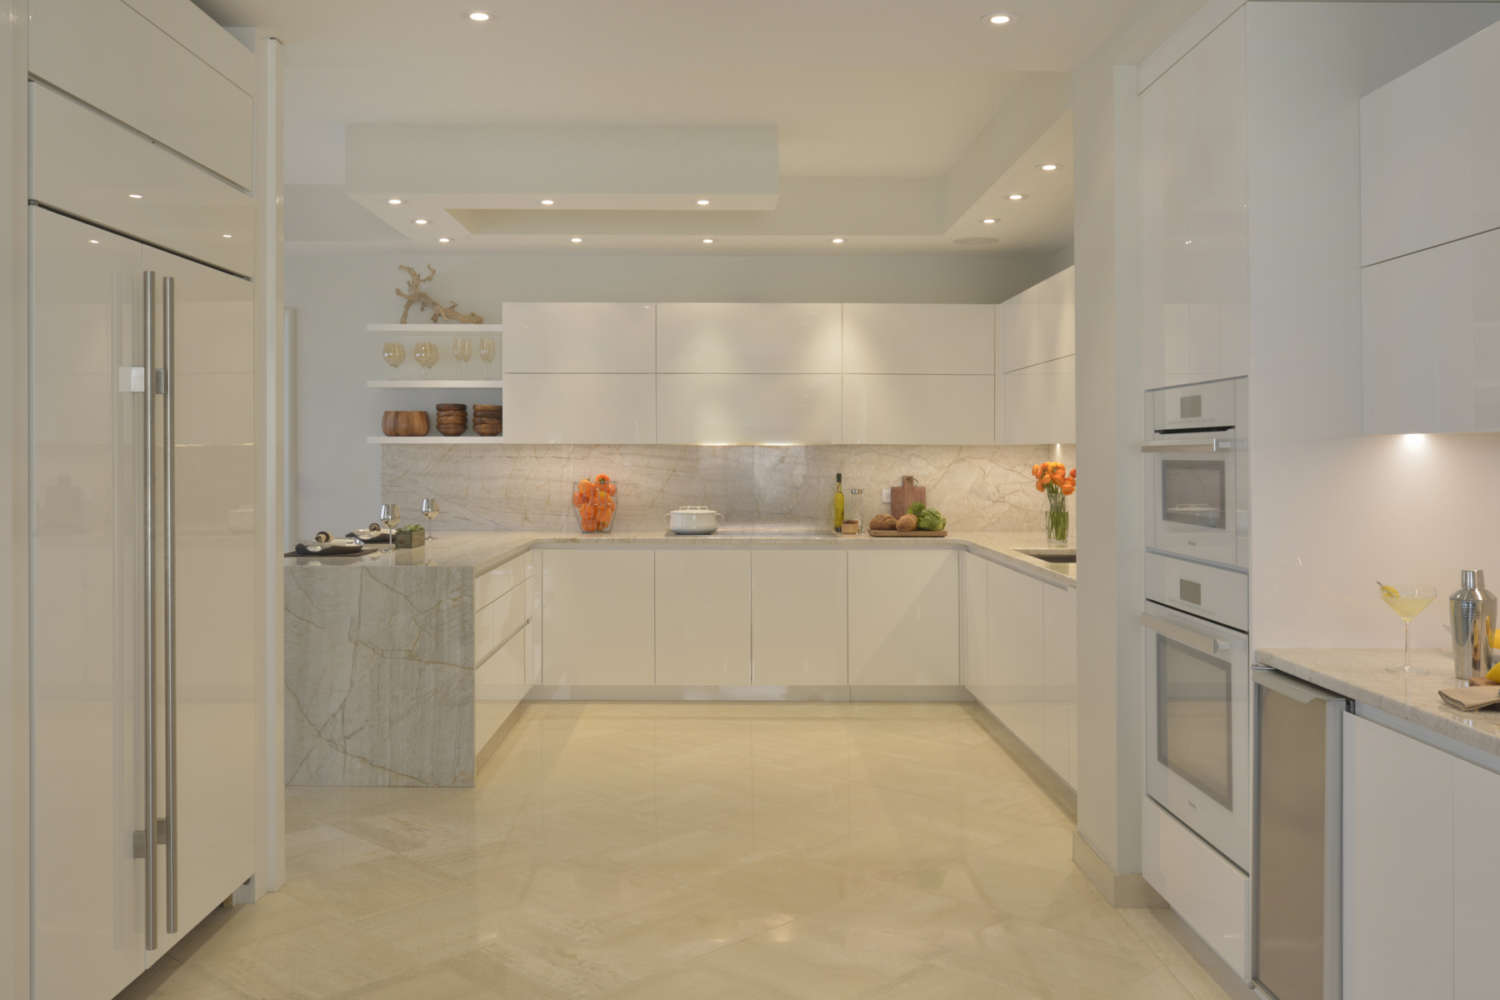 U-shaped kitchen is designed with soft lighting and a palette of warm whites. The fully custom cabinets are ArtCraft flat panel, frameless in high gloss white, countertops and backsplash are light marble with veining, and the floor is a light porcelain tile. Open shelving is used for display. Design by Tabitha Tepe of Bilotta Kitchens.